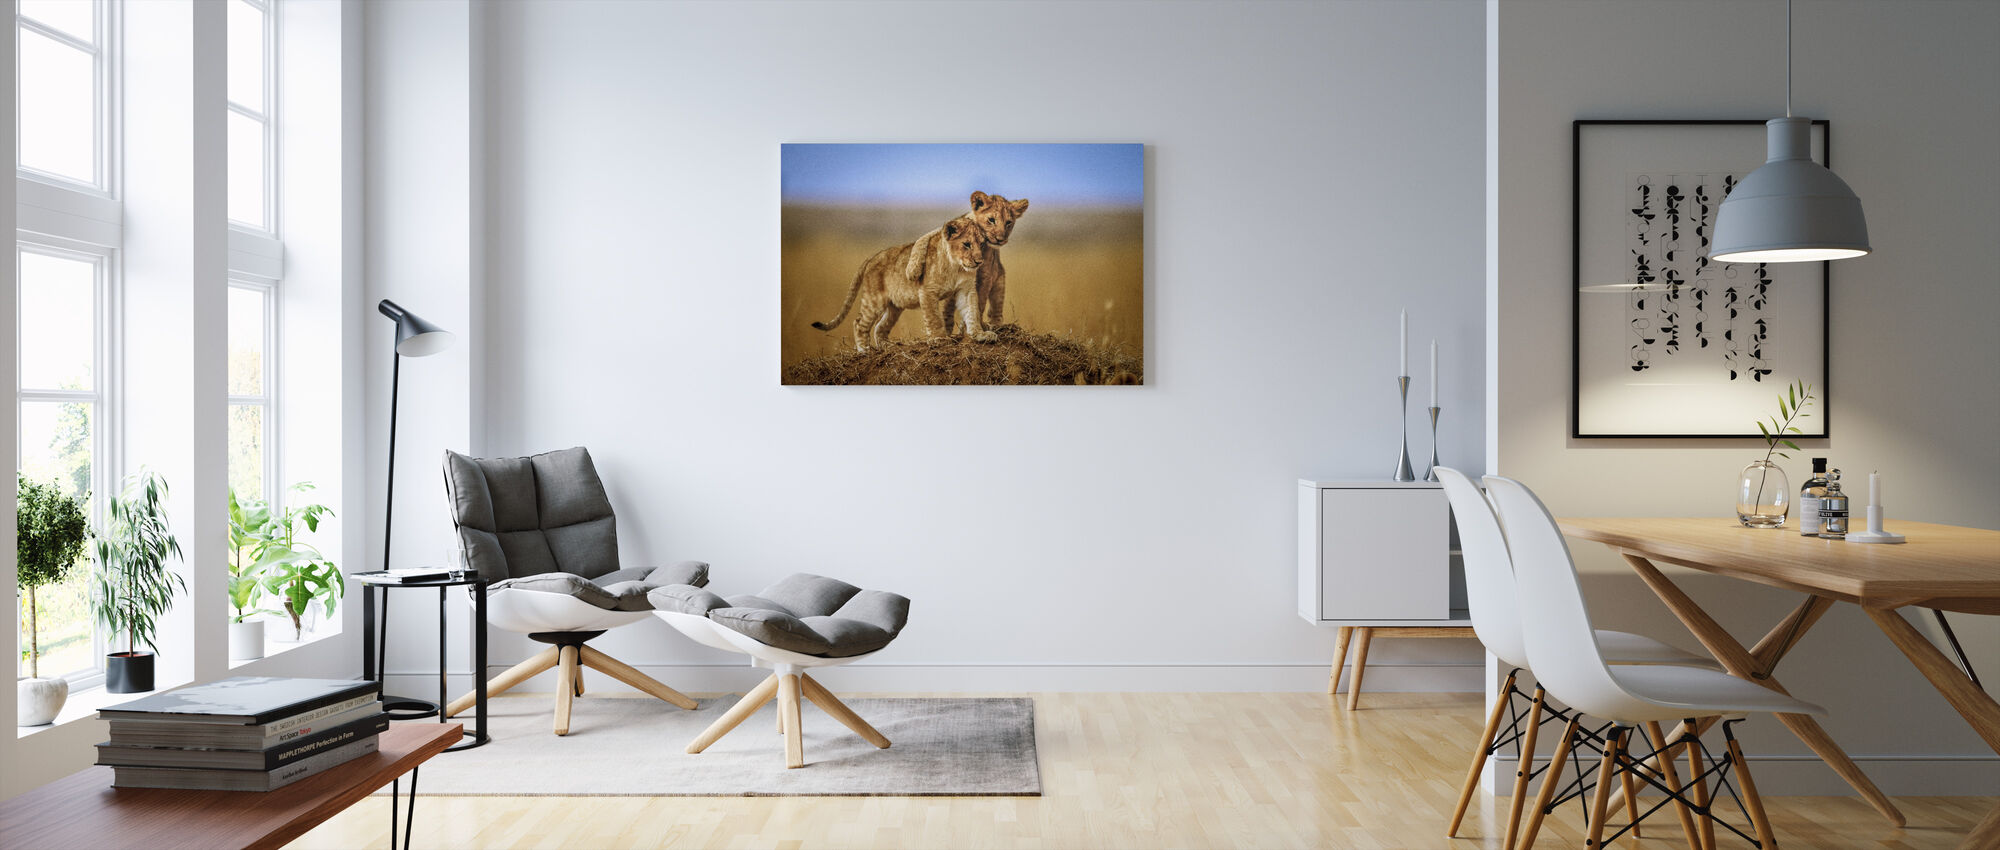 Brothers for Life - Canvas print - Living Room